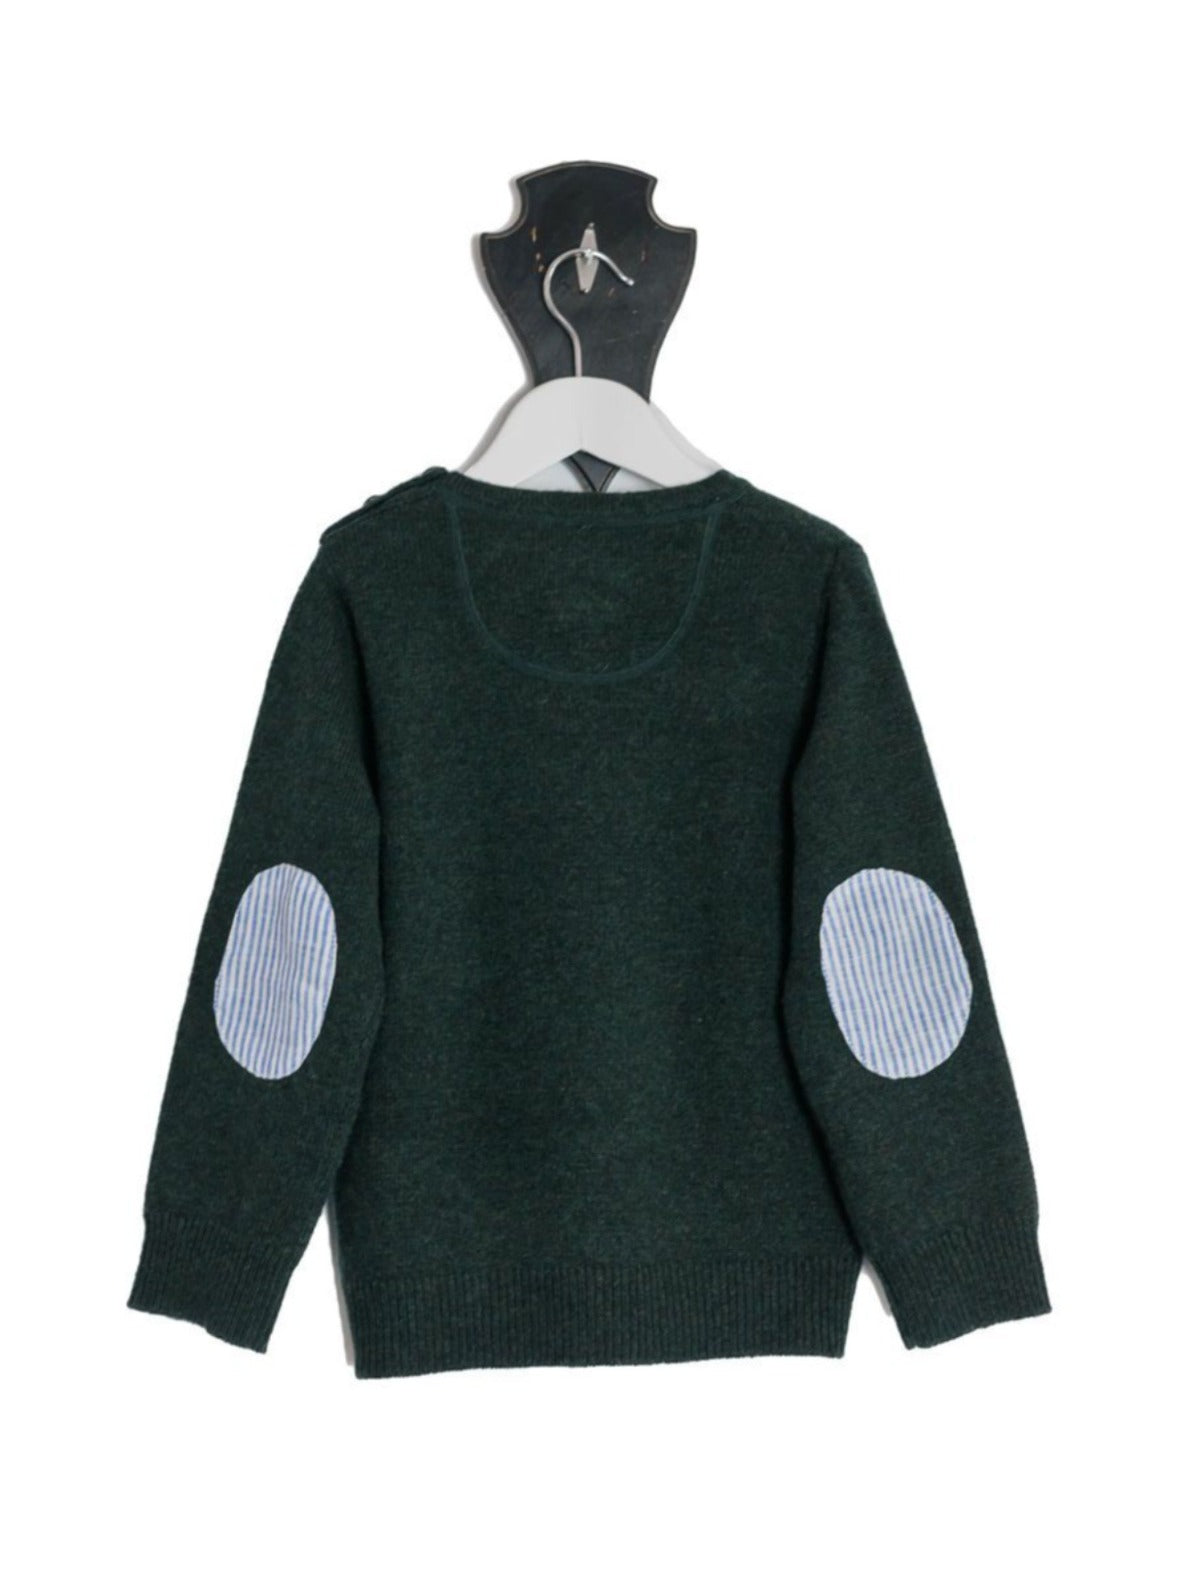 Forest Green Freddie Crew Neck Jumper with Blue and White Stripe Patches